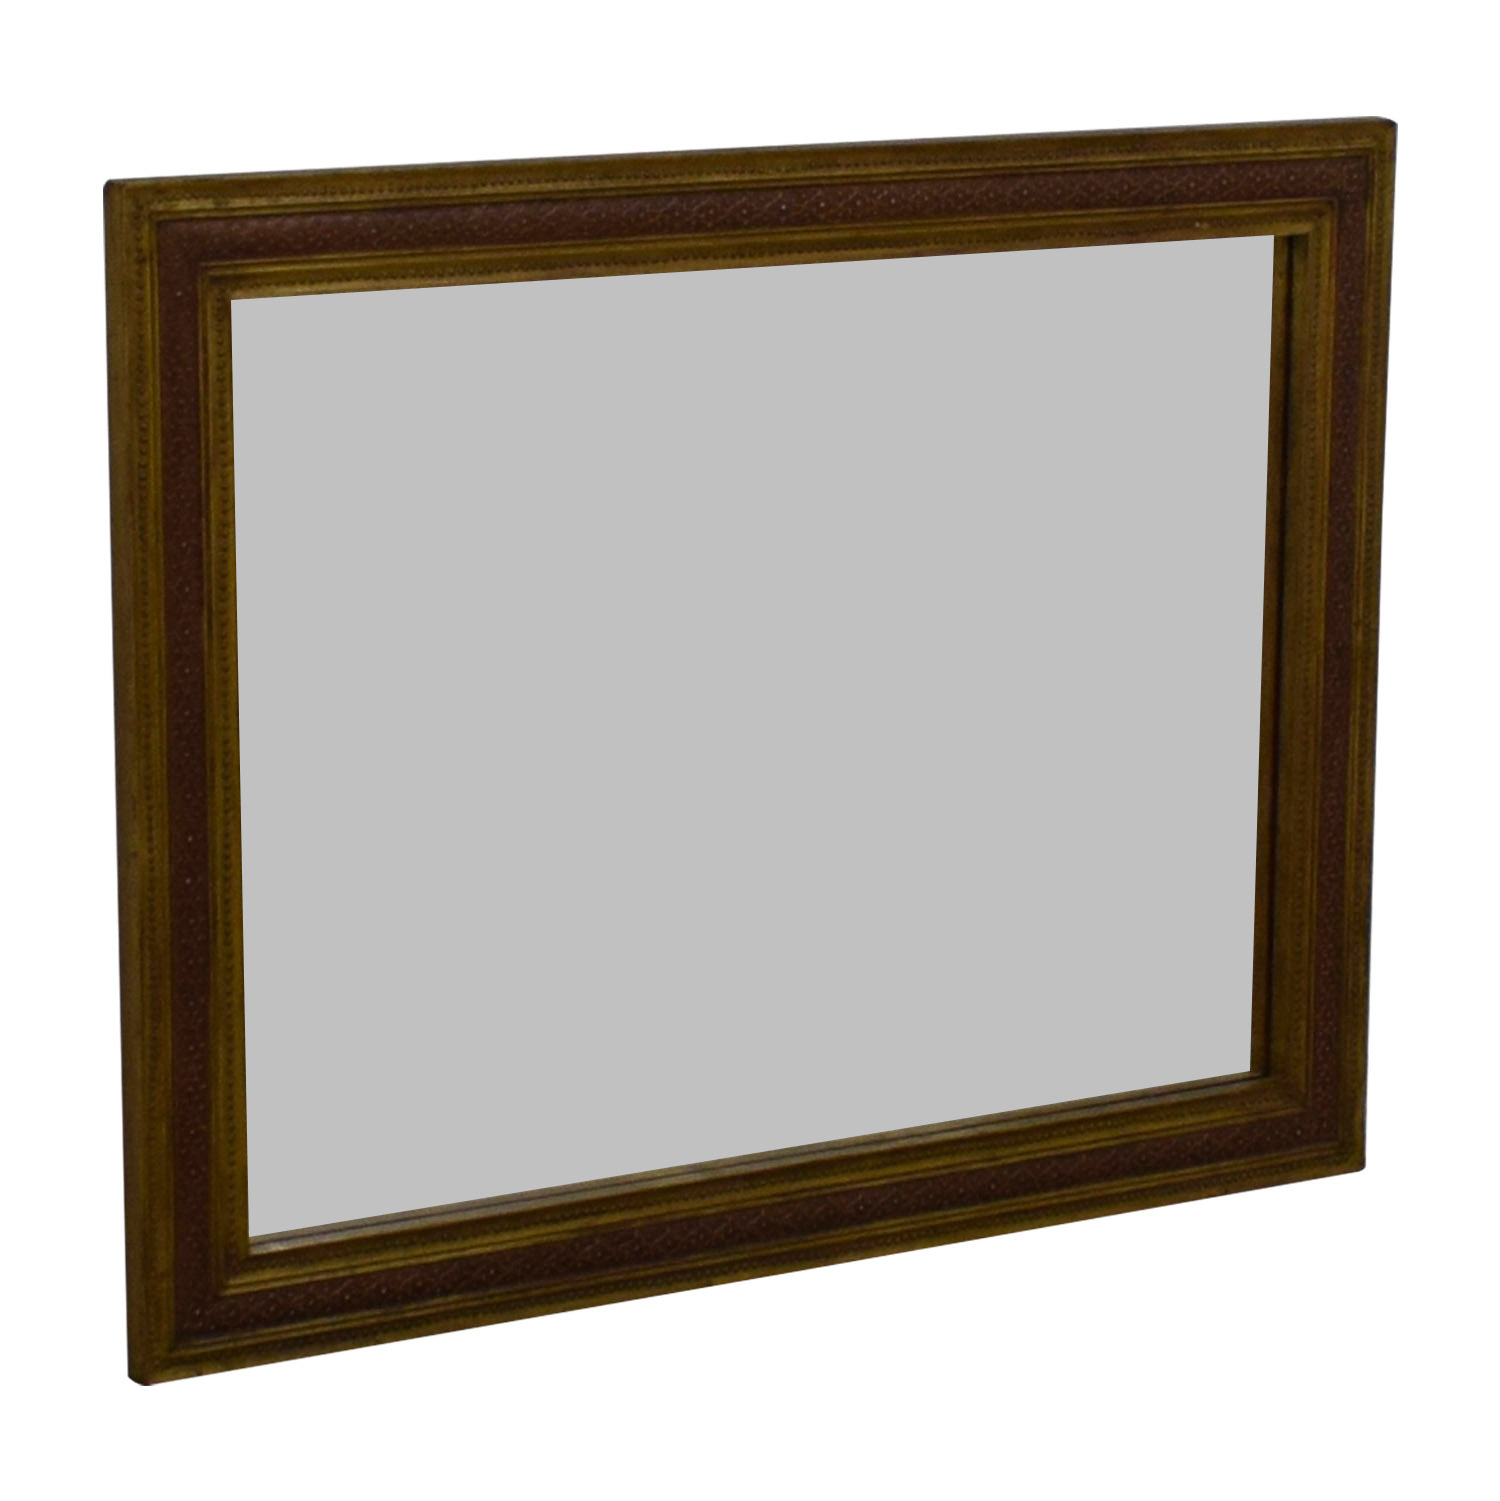 Antique Gold Framed Mirror discount